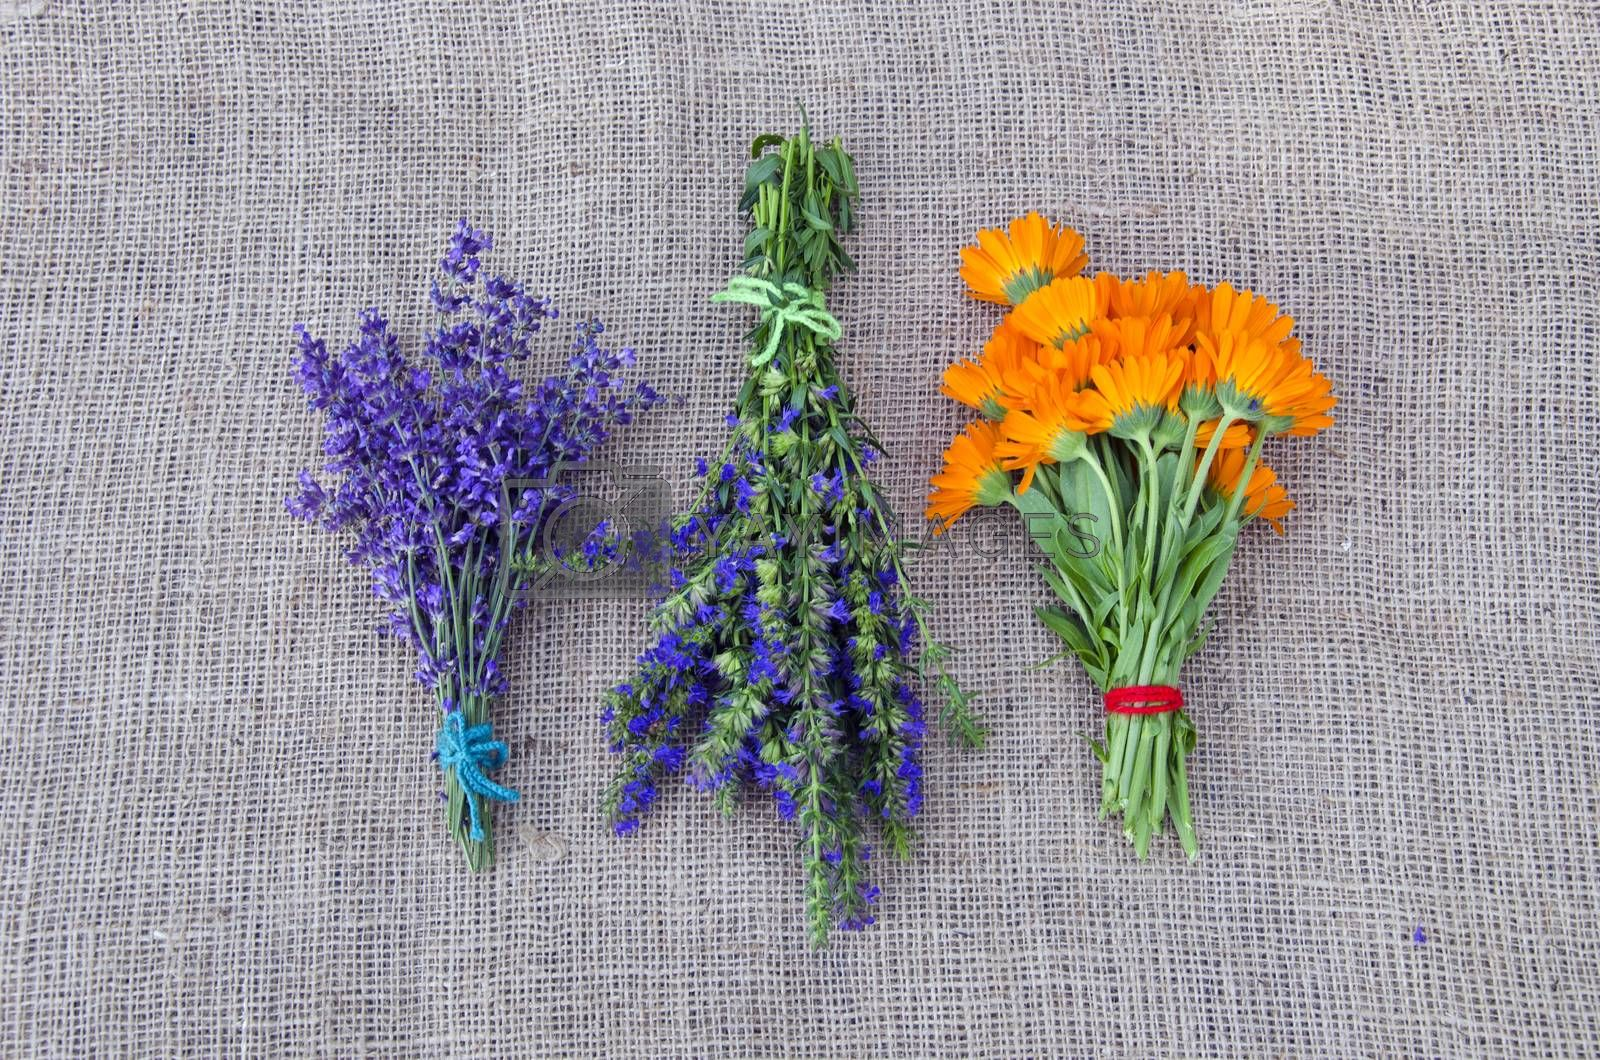 Royalty free image of  bundles of freshly picked herbs placed on linen background   by alis_photo